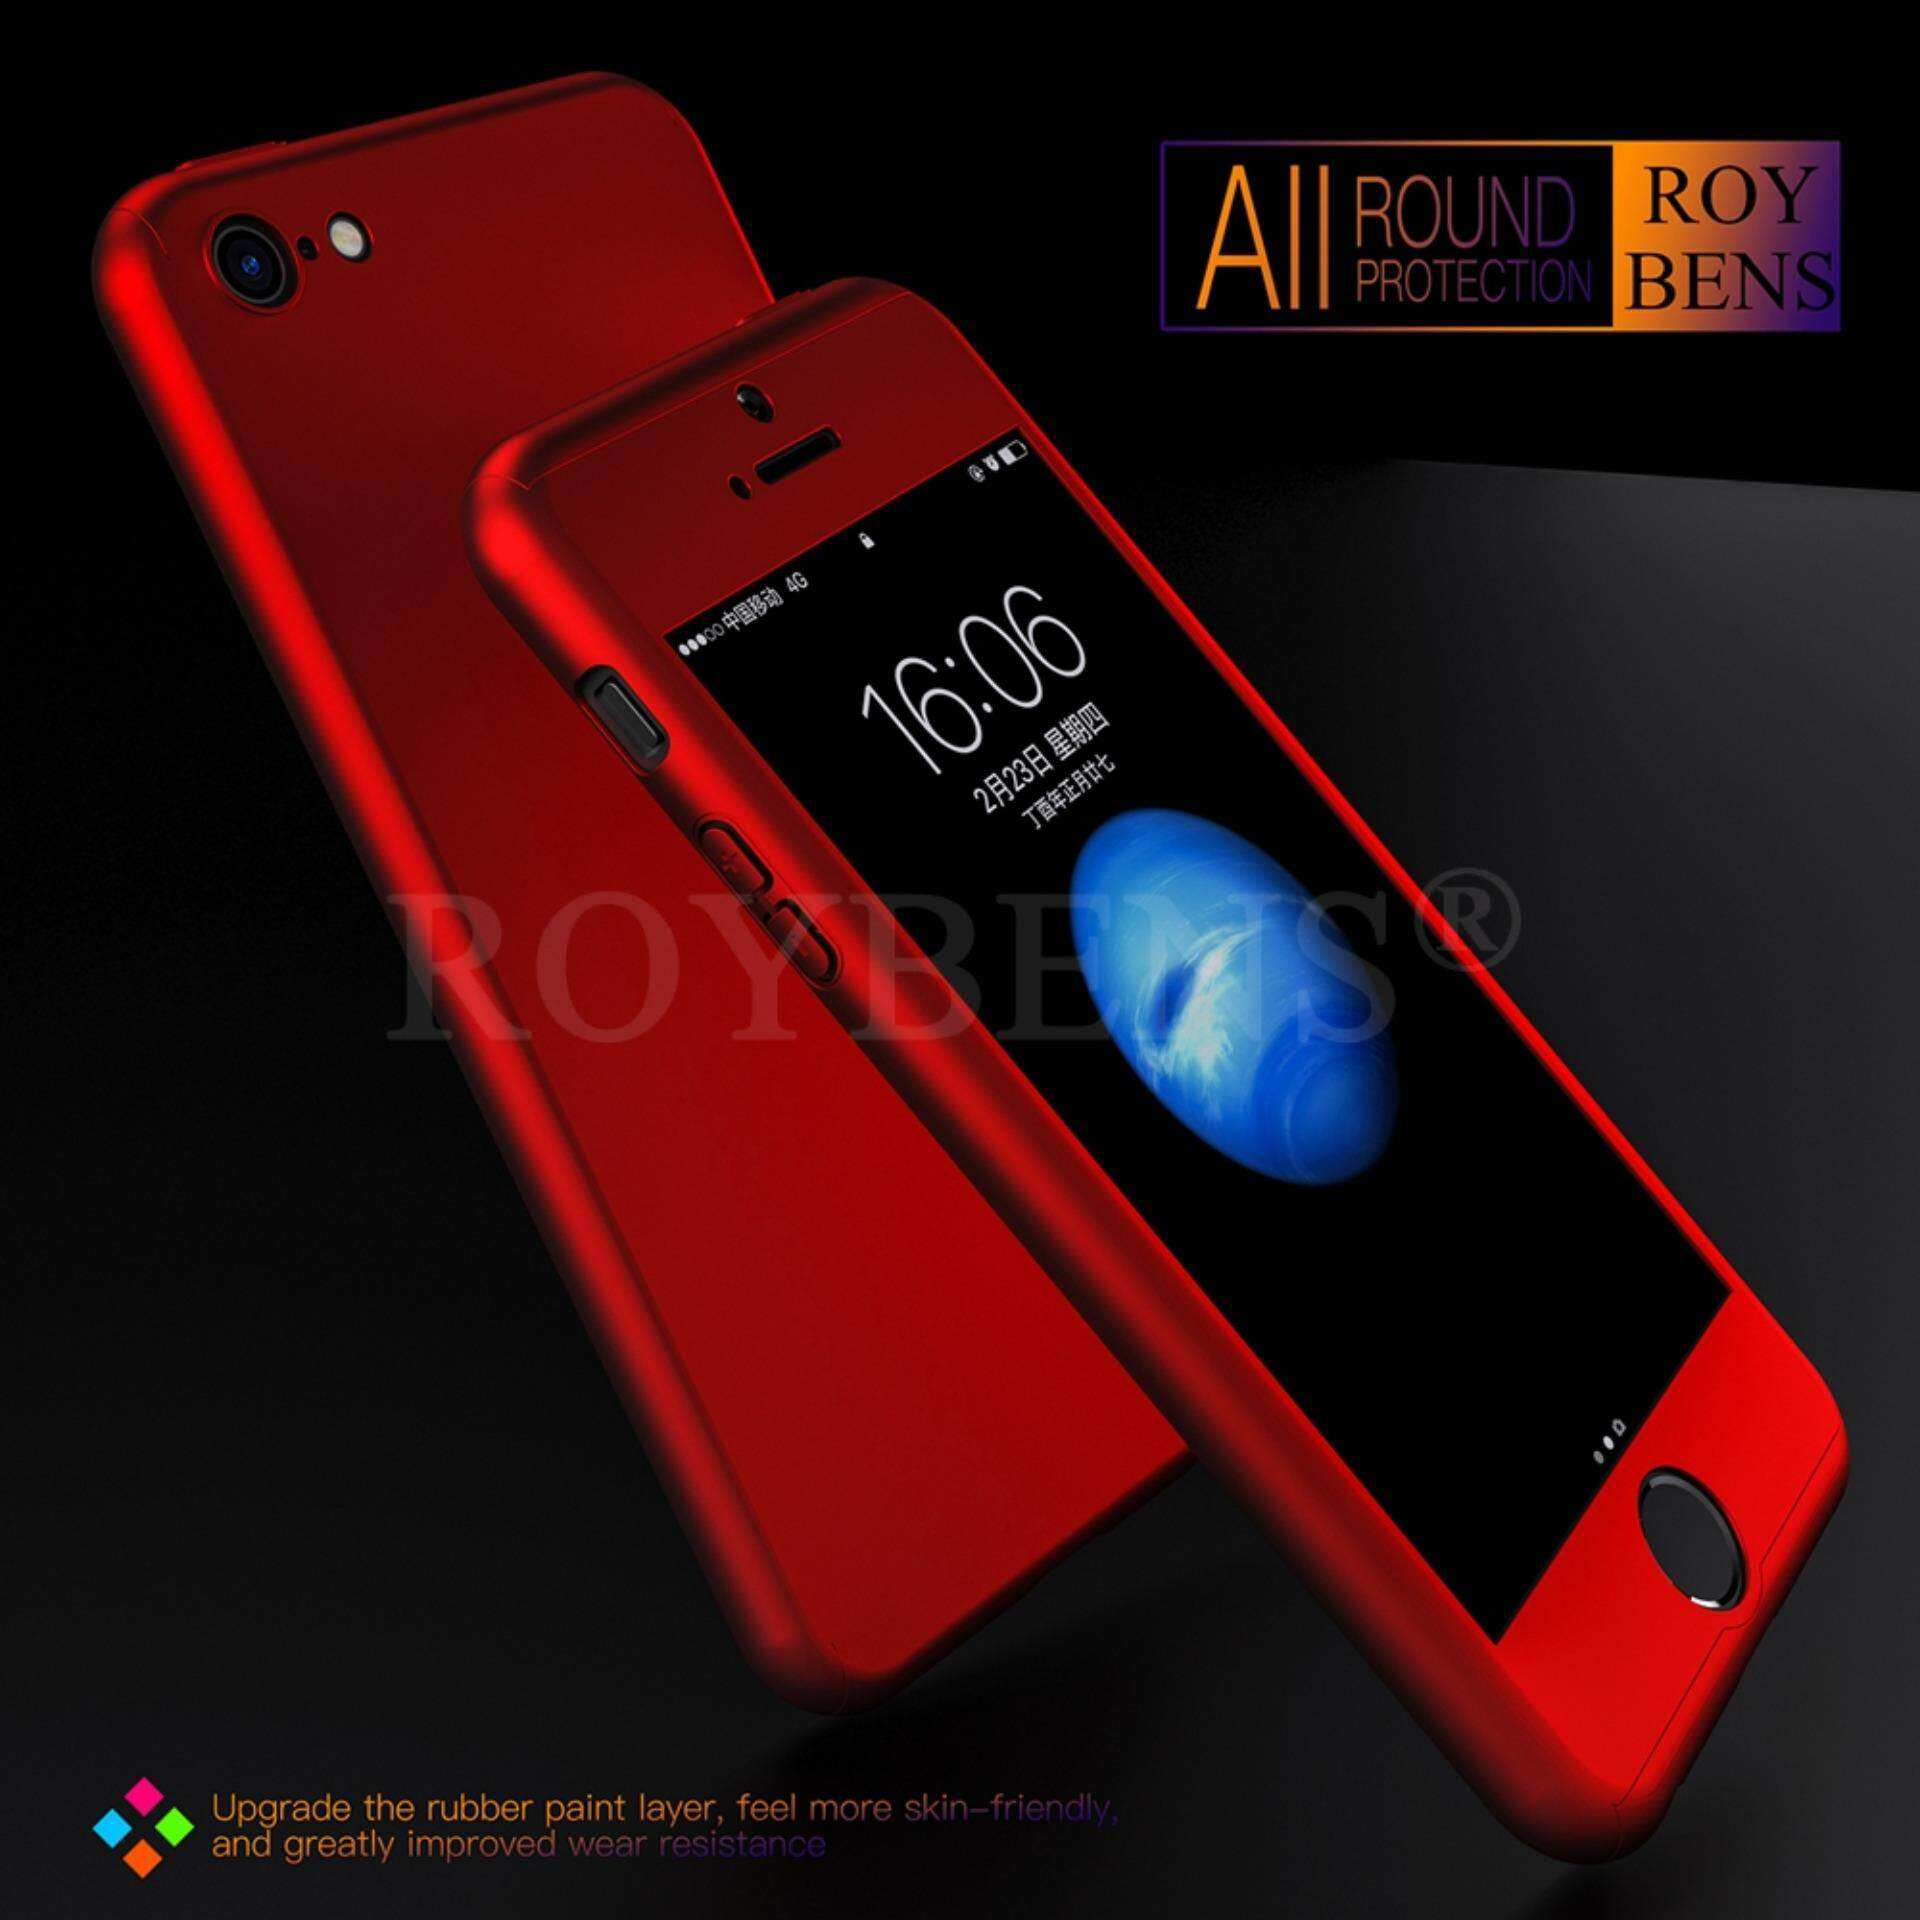 Roybens 360° Full Hybrid Acrylic Hard Case Cover + Tempered Glass For iPhone 5/